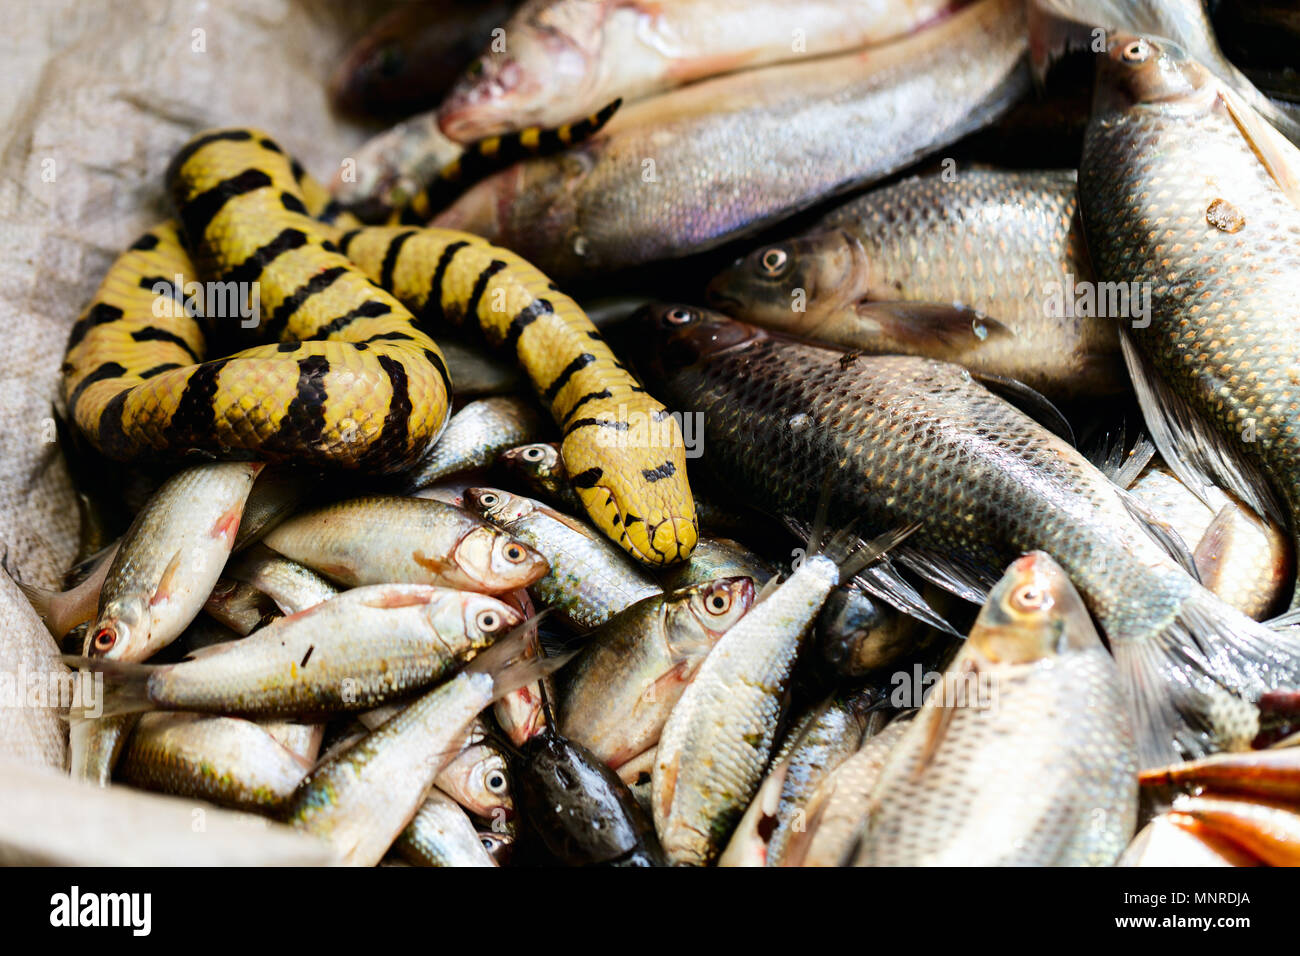 Fresh fish at seafood market in Cambodia - Stock Image